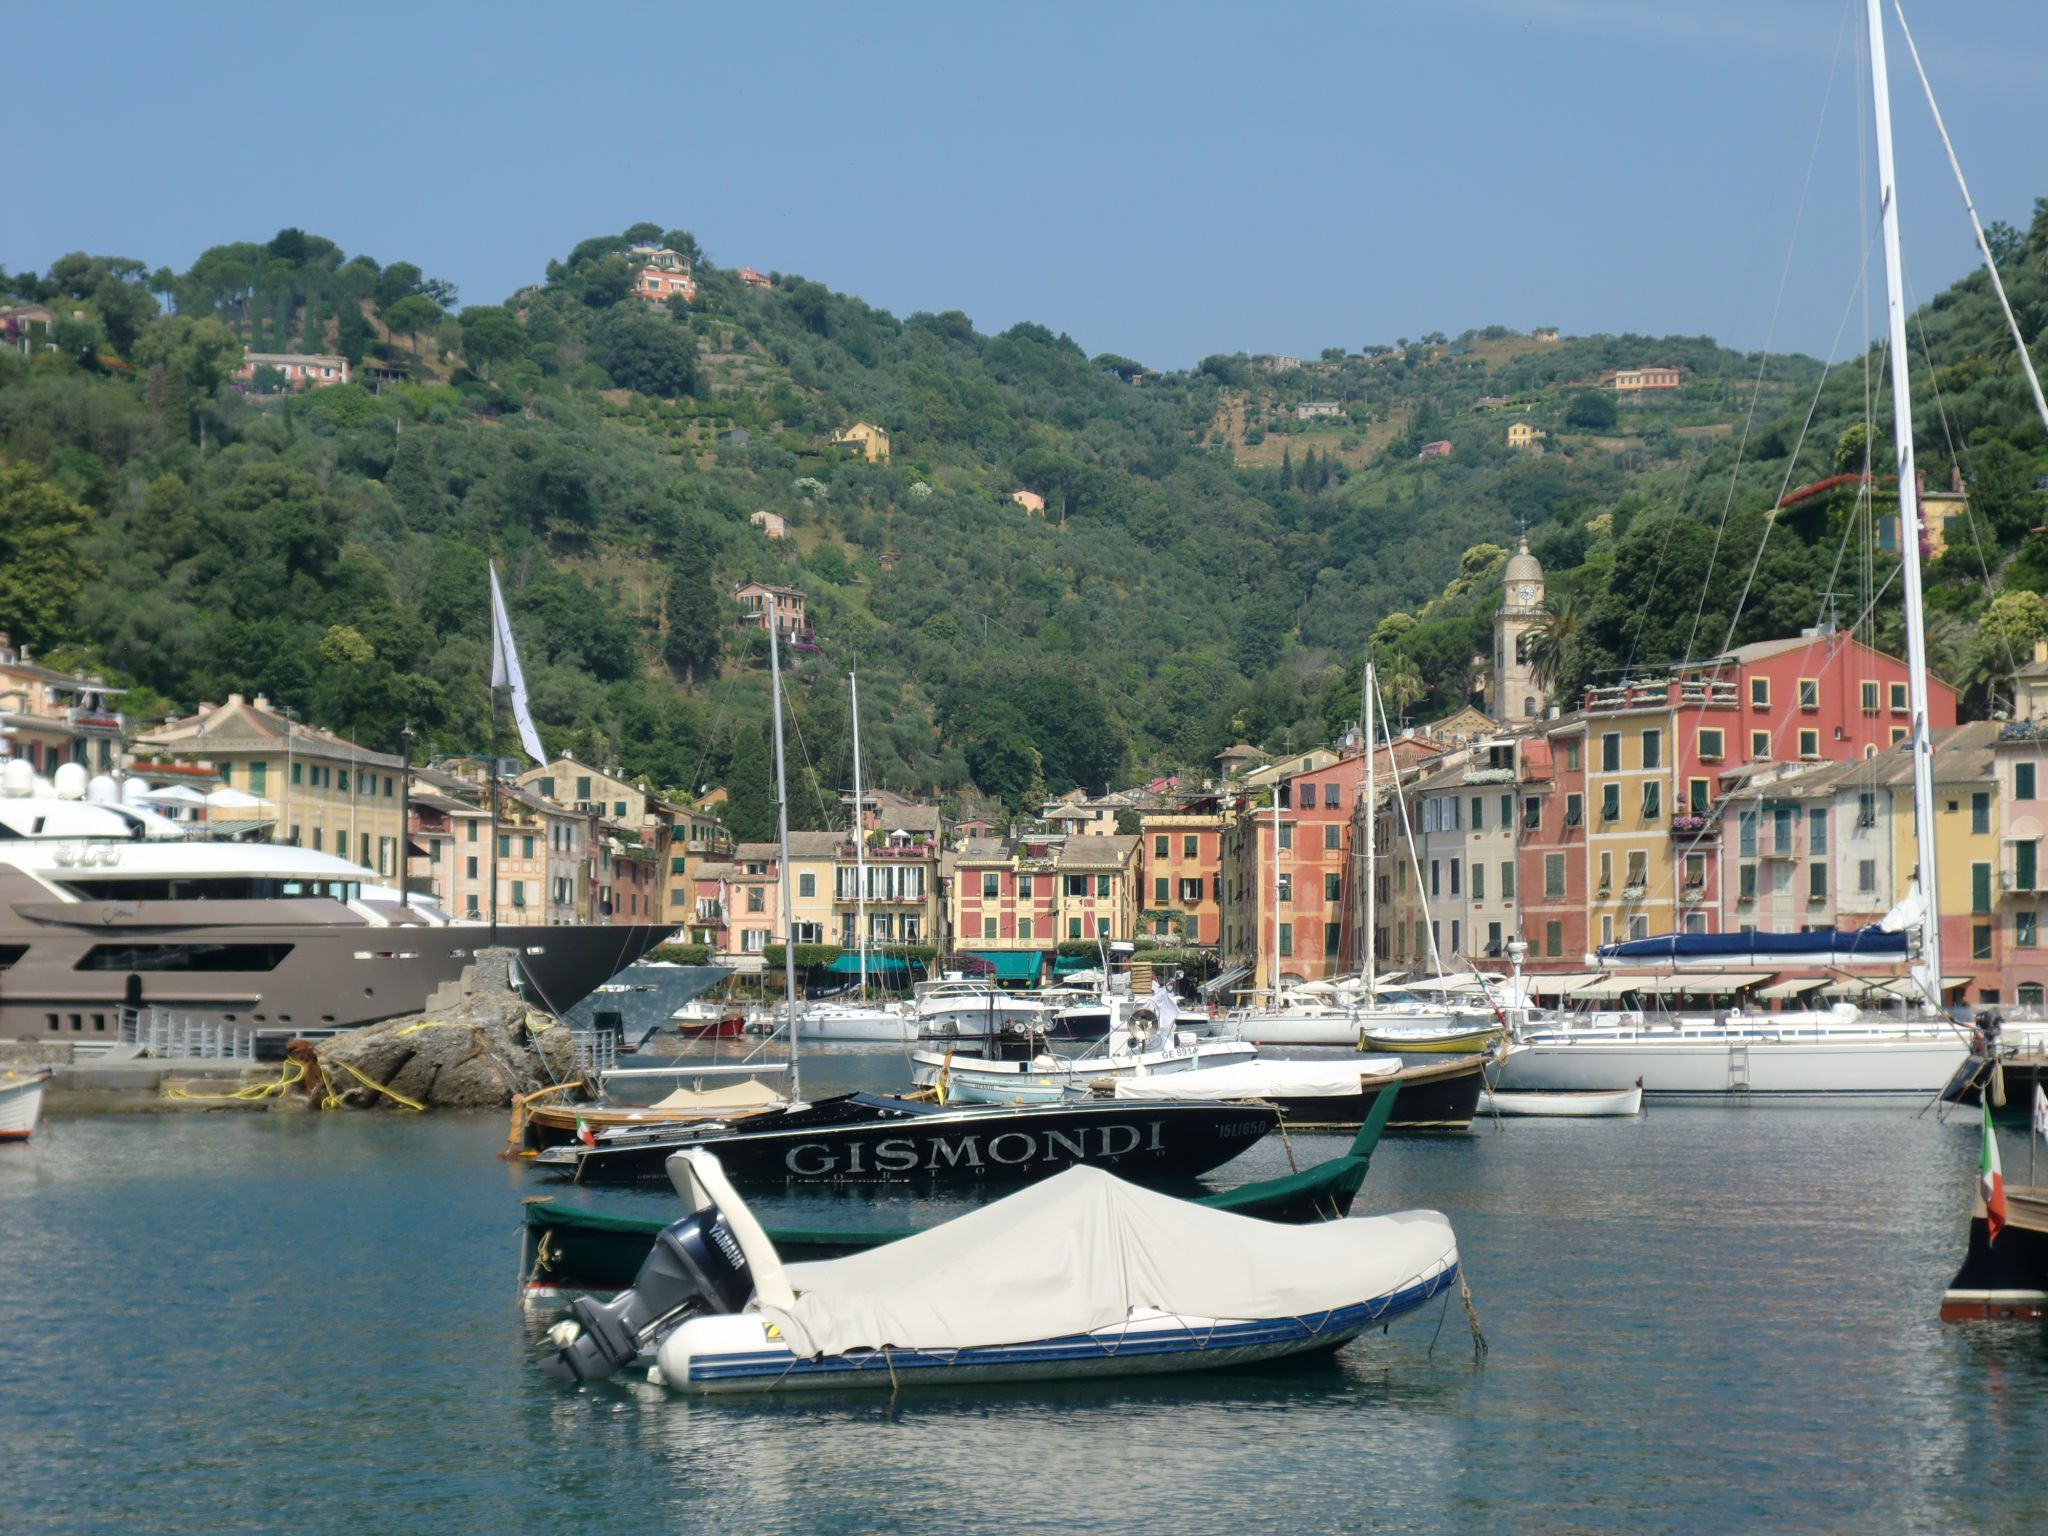 Portofino 17 - Portofino: a small pearl on the sea